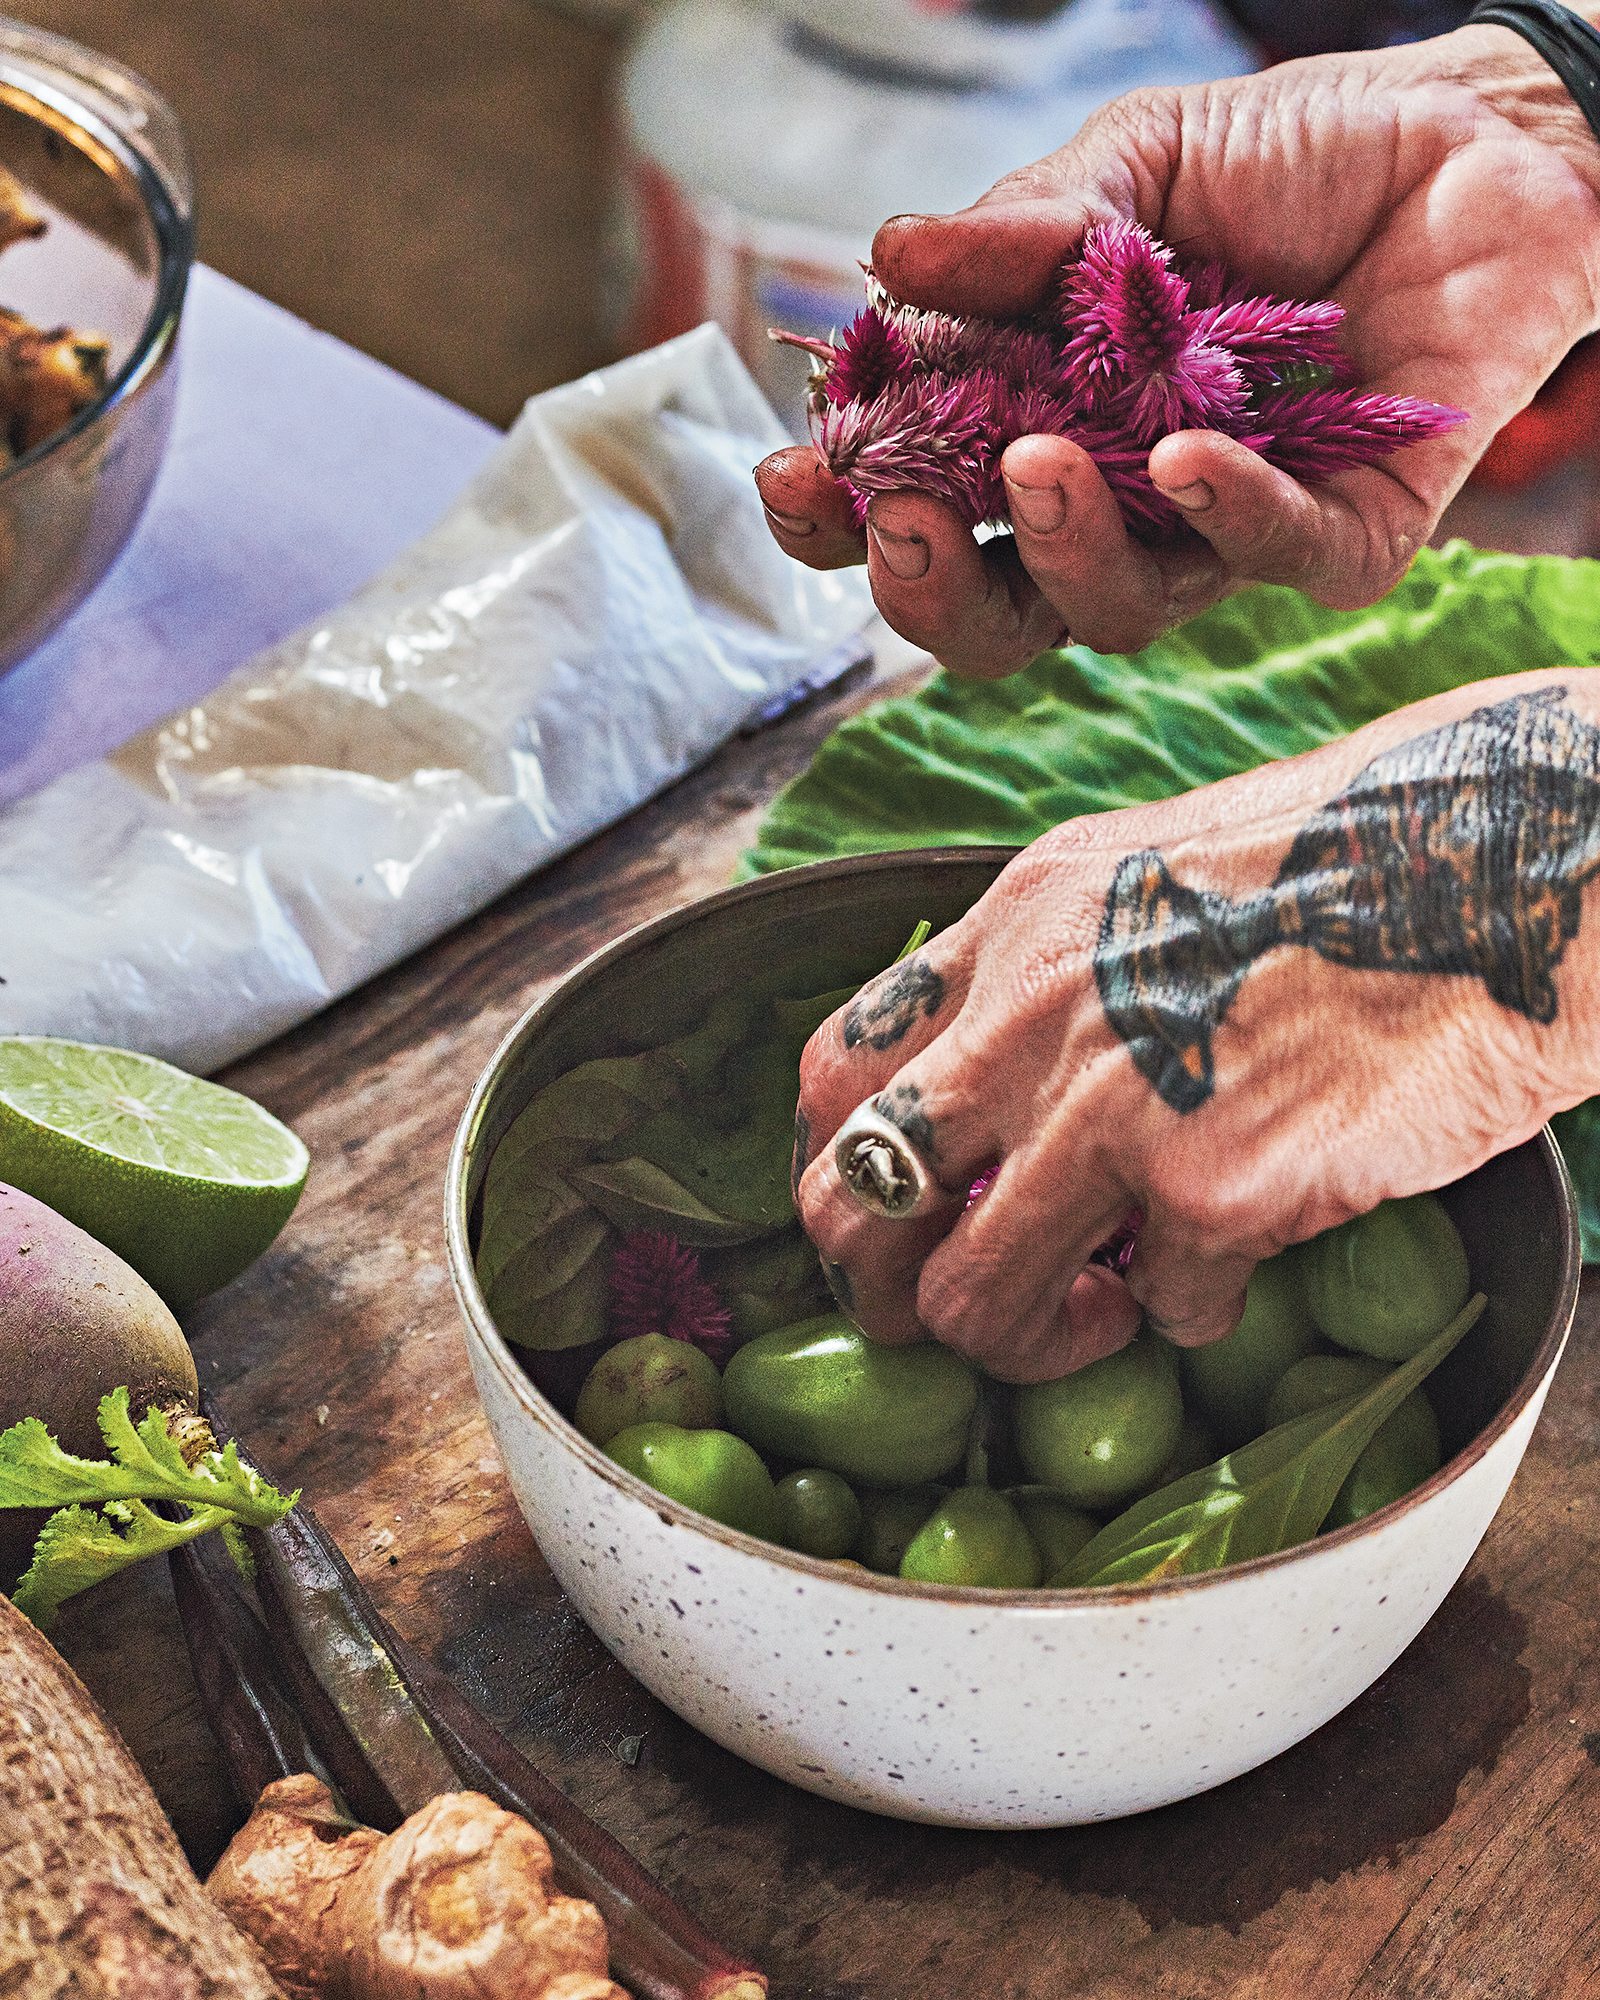 close up of hands grabbing produce from a bowl